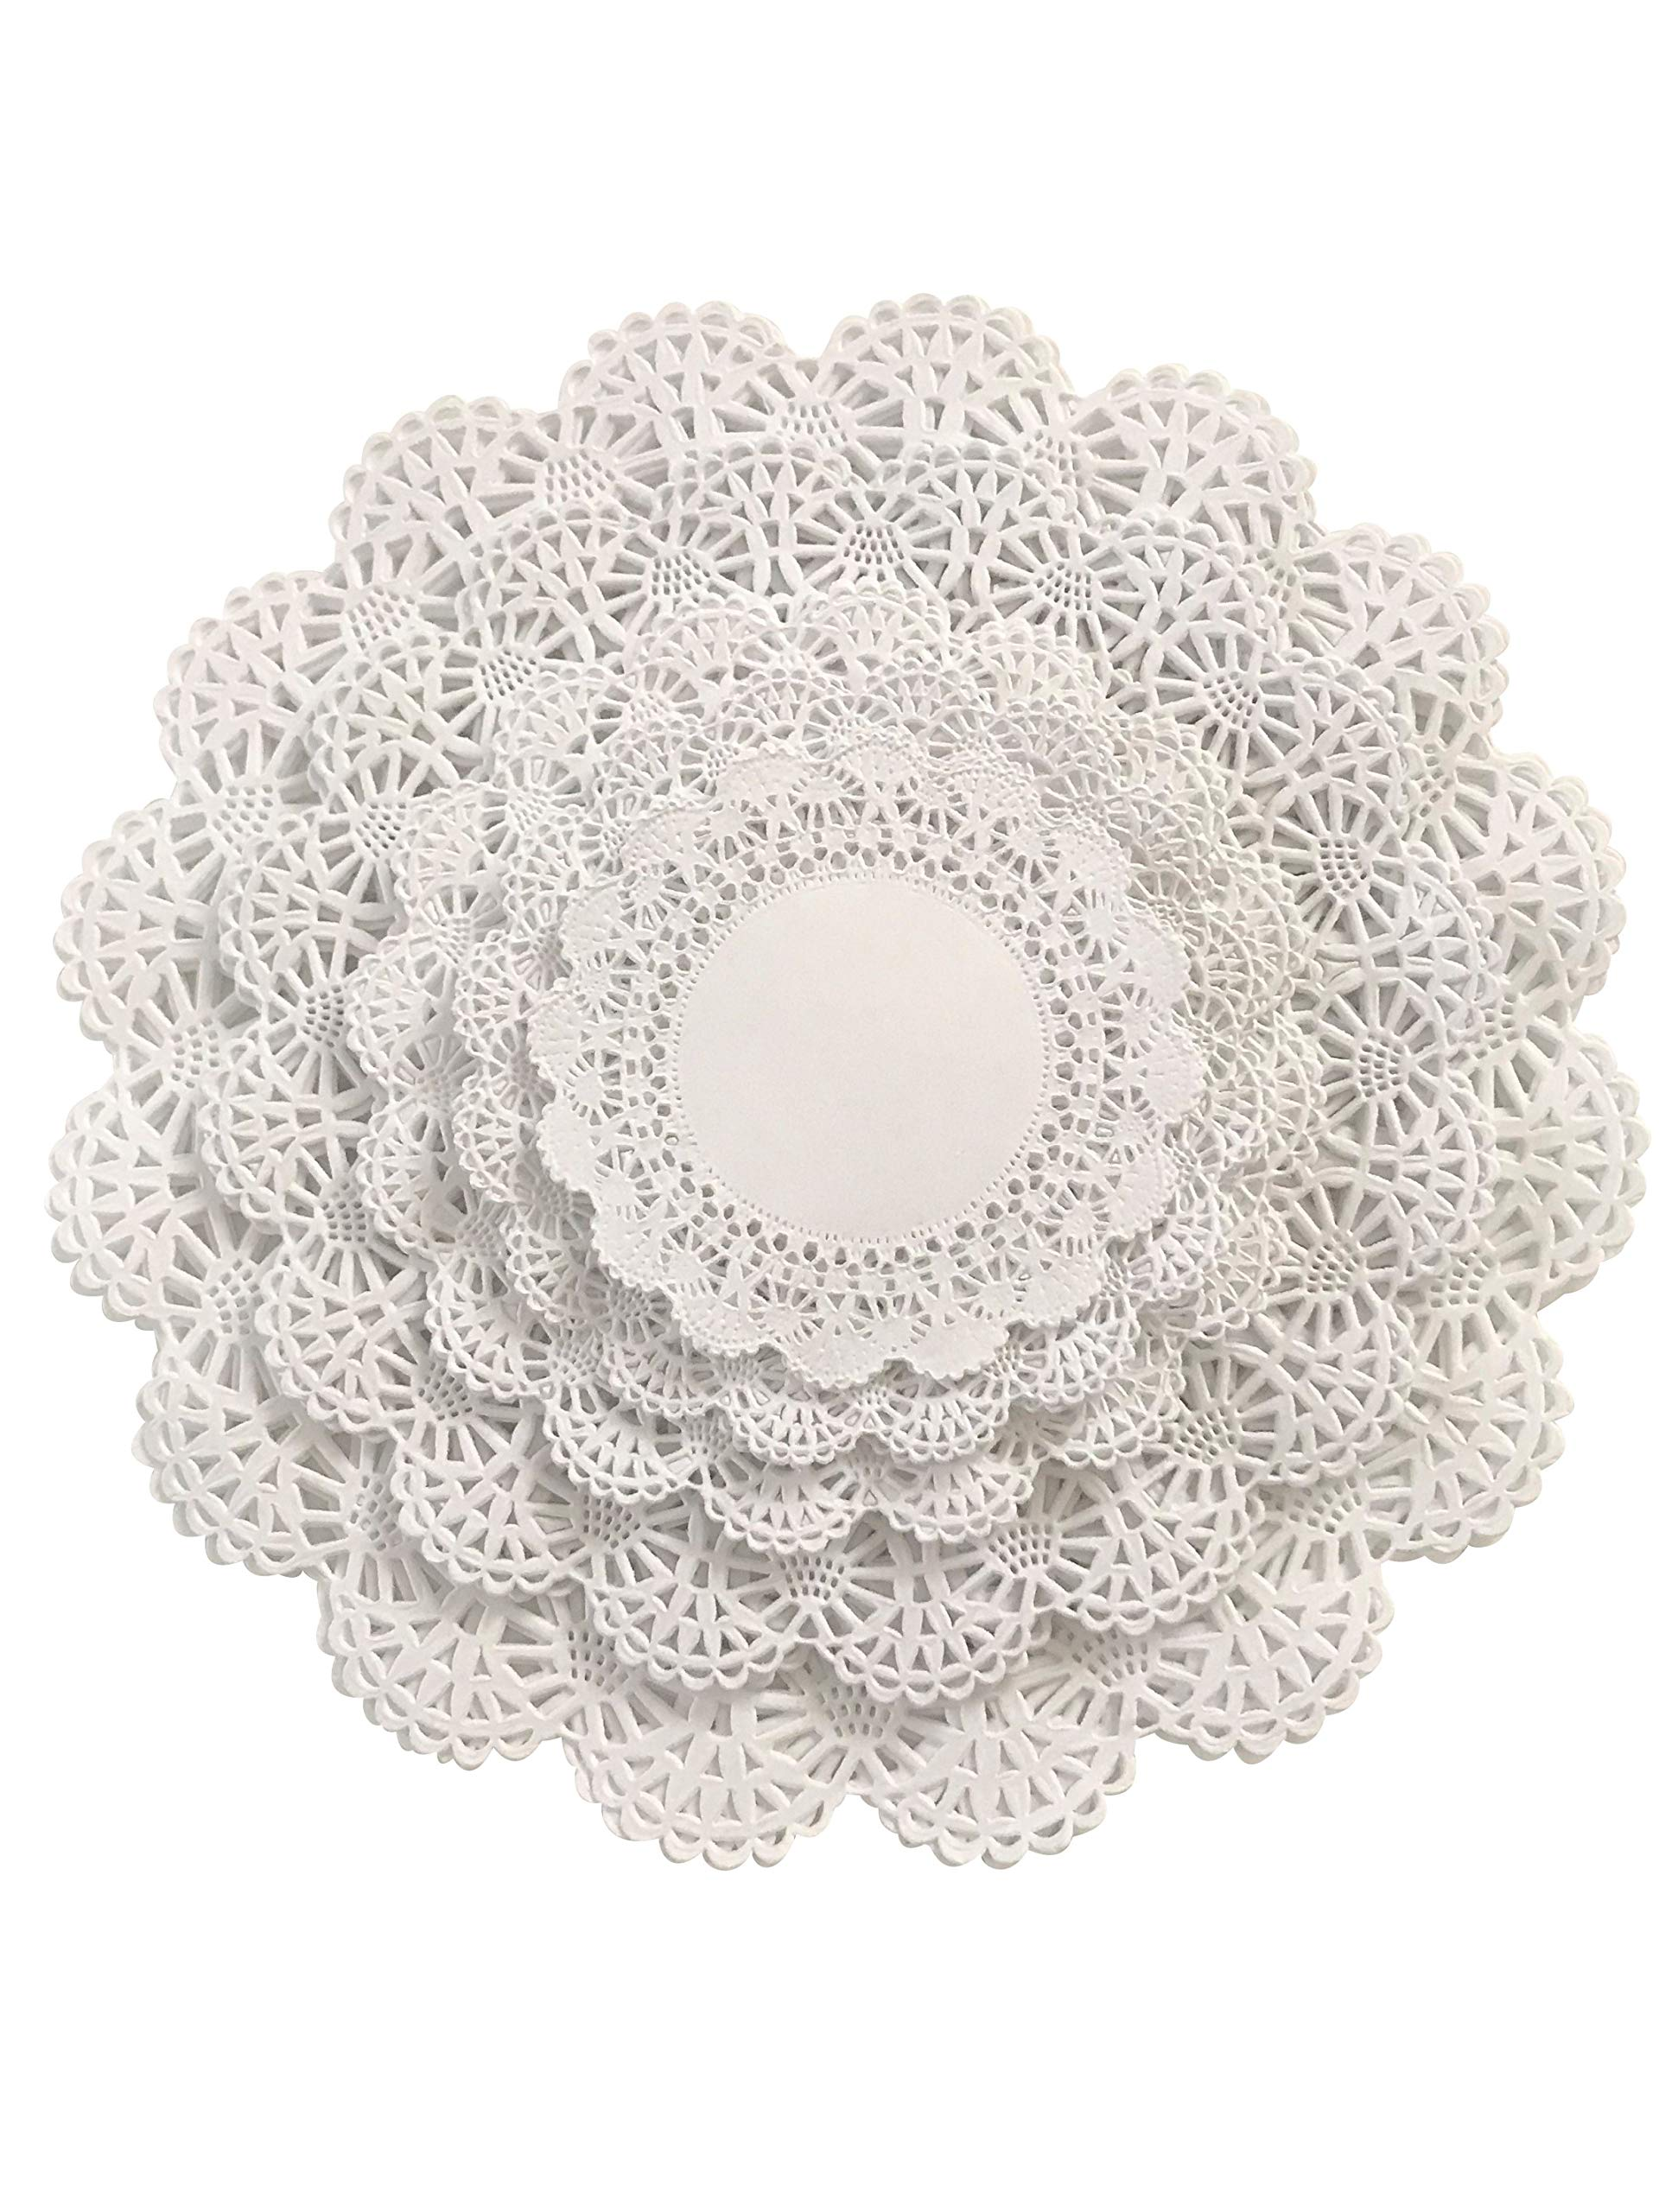 150 Paper Lace Doilies Variety Pack 30 each of 4, 5, 6, 8, and 10 inch (30 of each size) White Assorted Sizes